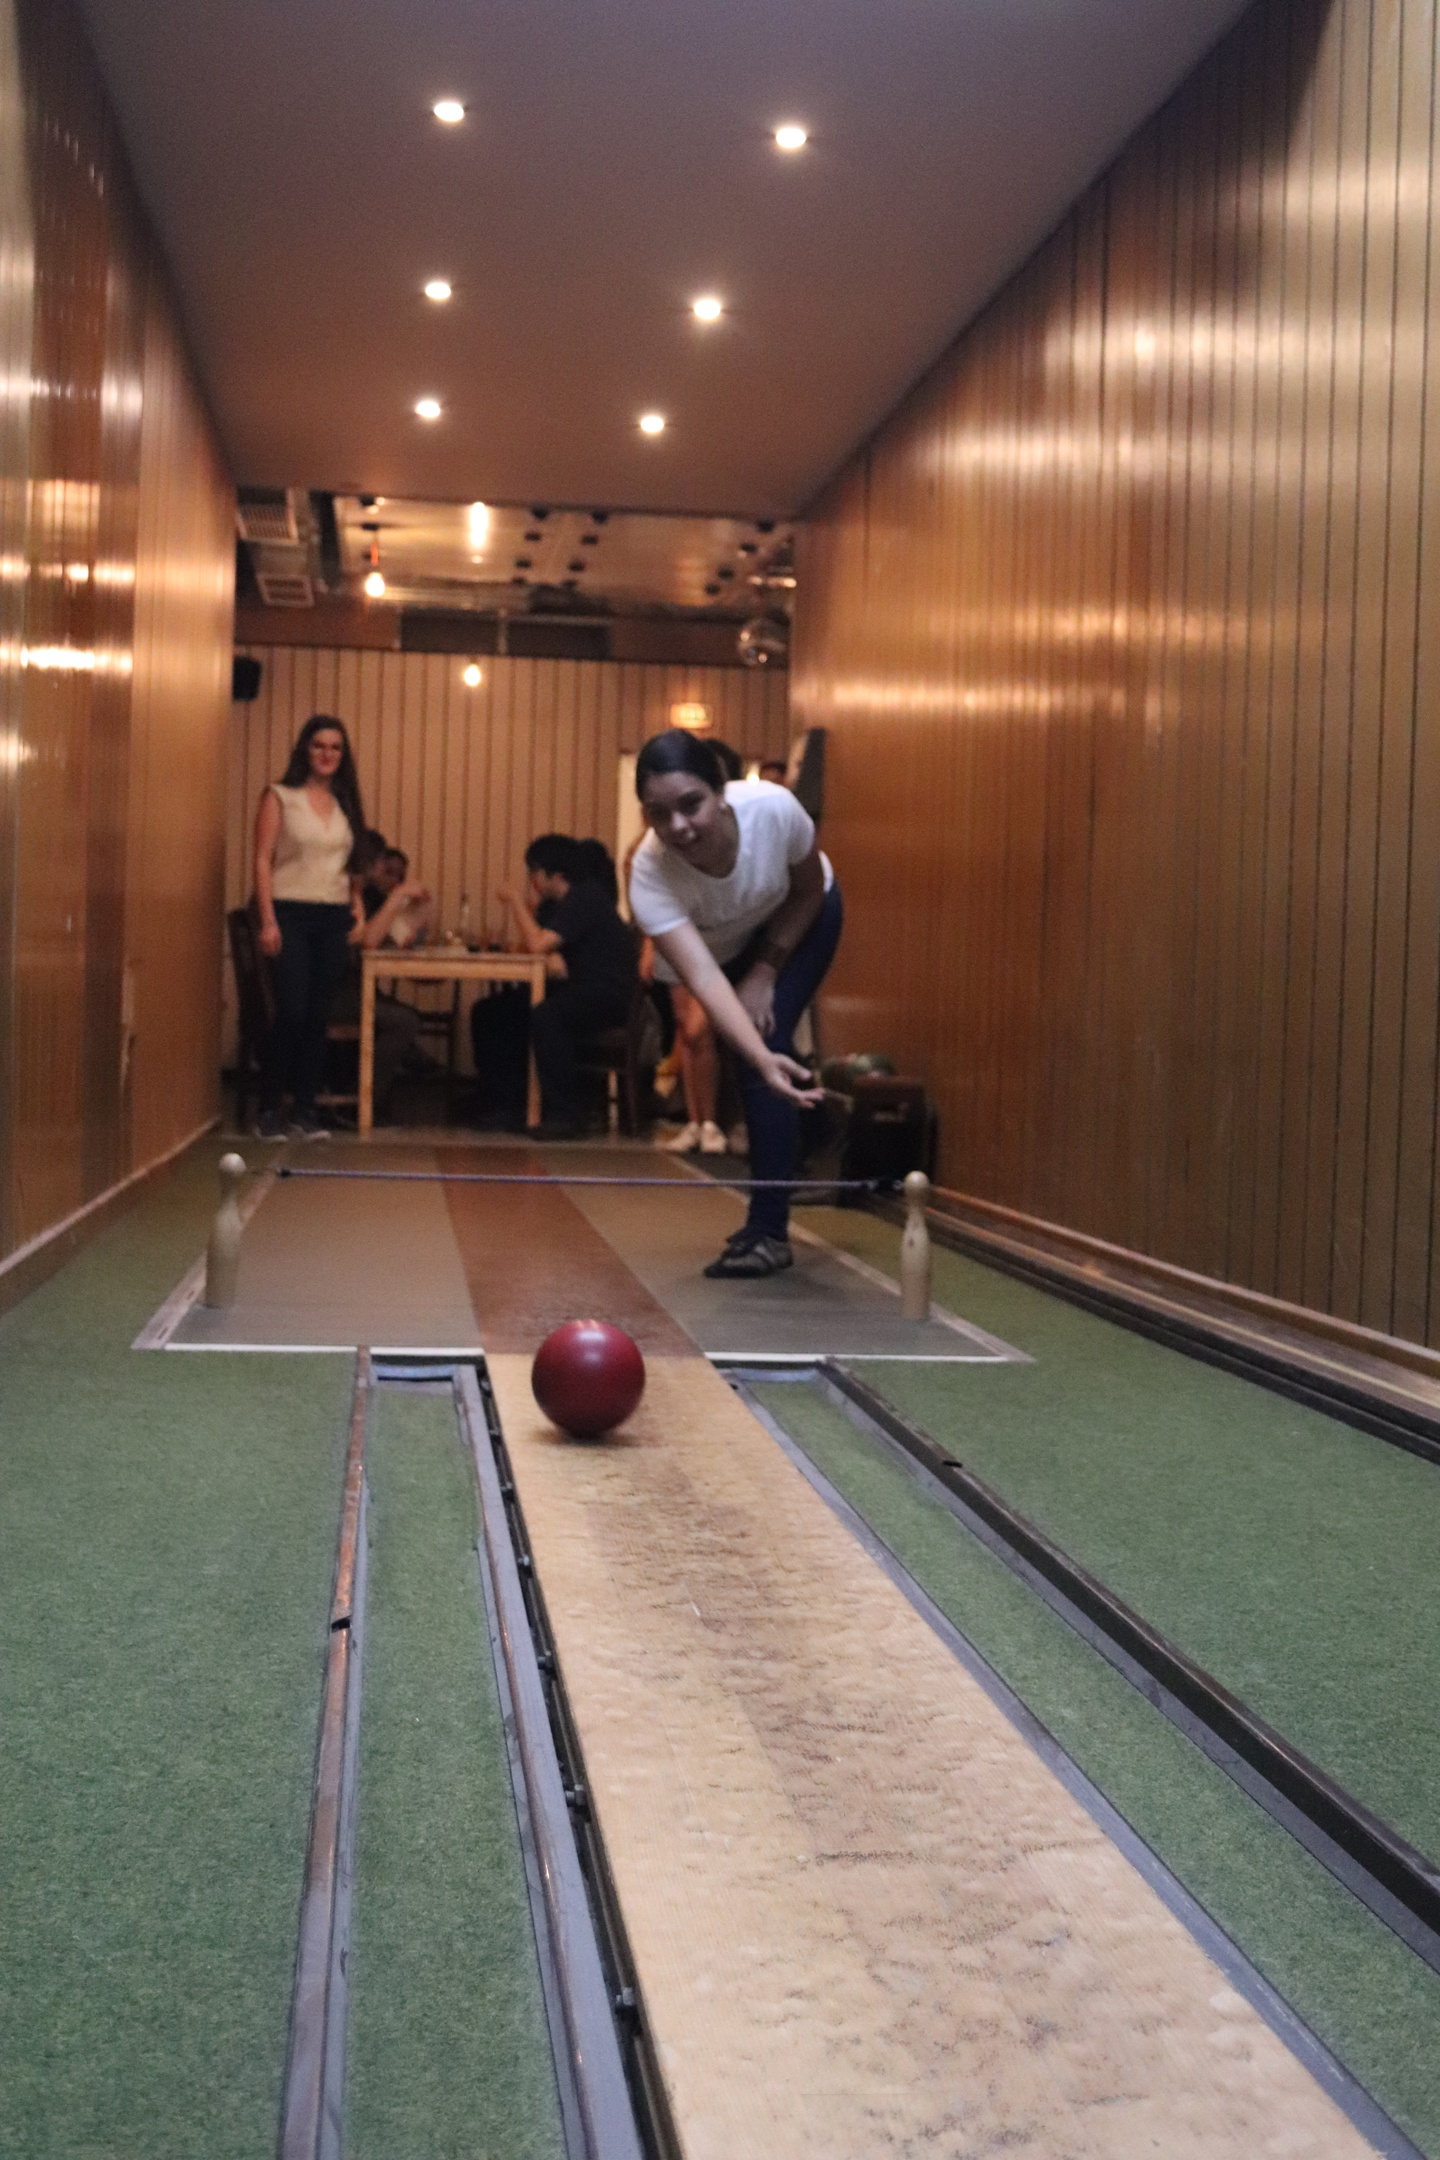 Frot view of bowling student.